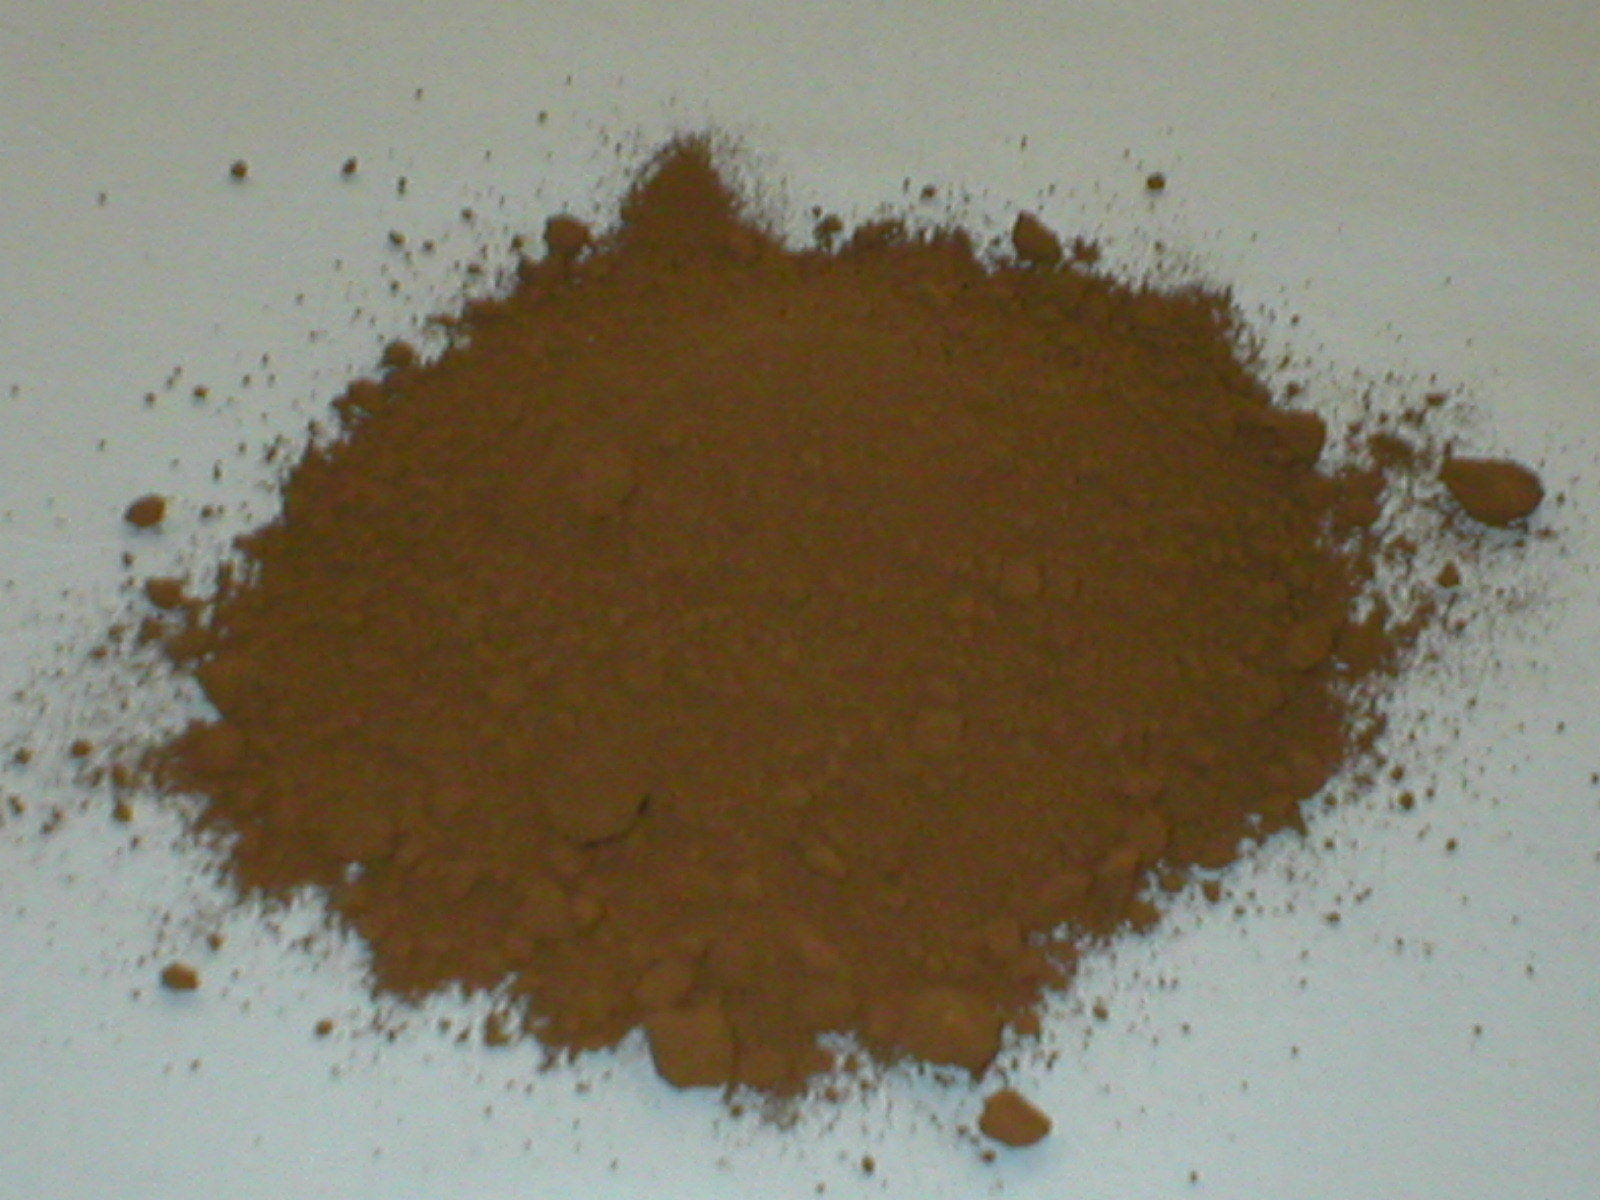 385-01 Umber Brown Concrete Cement Powder Color 1 lb. Makes Stone Pavers Bricks